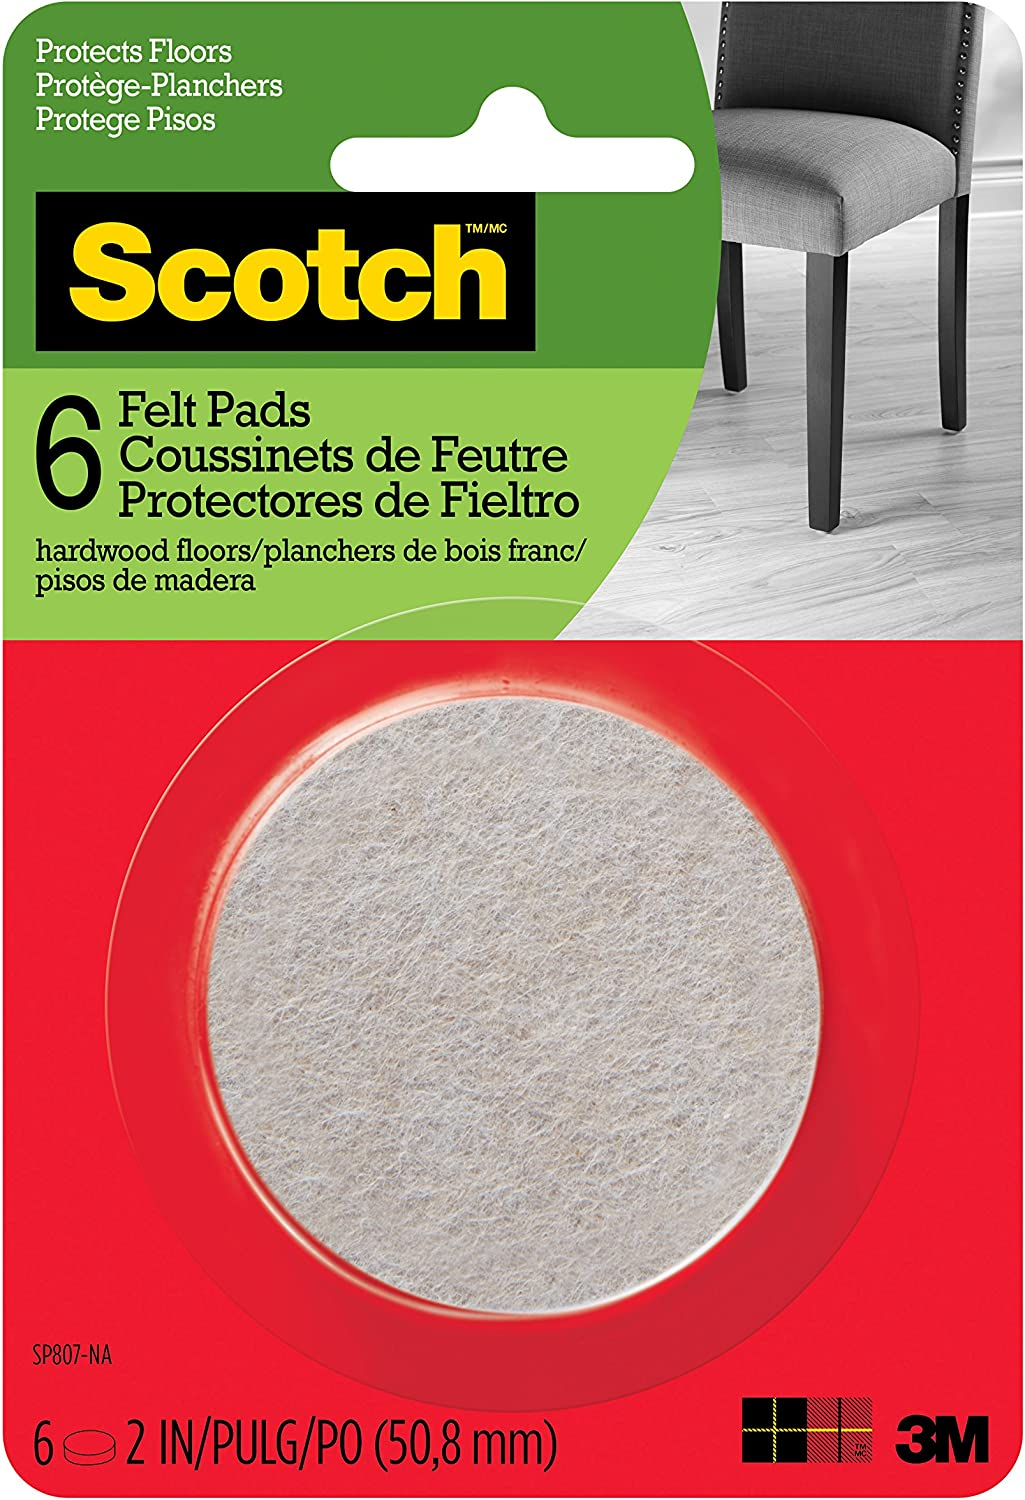 Scotch Mounting, Fastening & Surface Protection SP807-NA Scotch Felt Pads Round, 2 in. Diameter, Beige, 6/Pack,